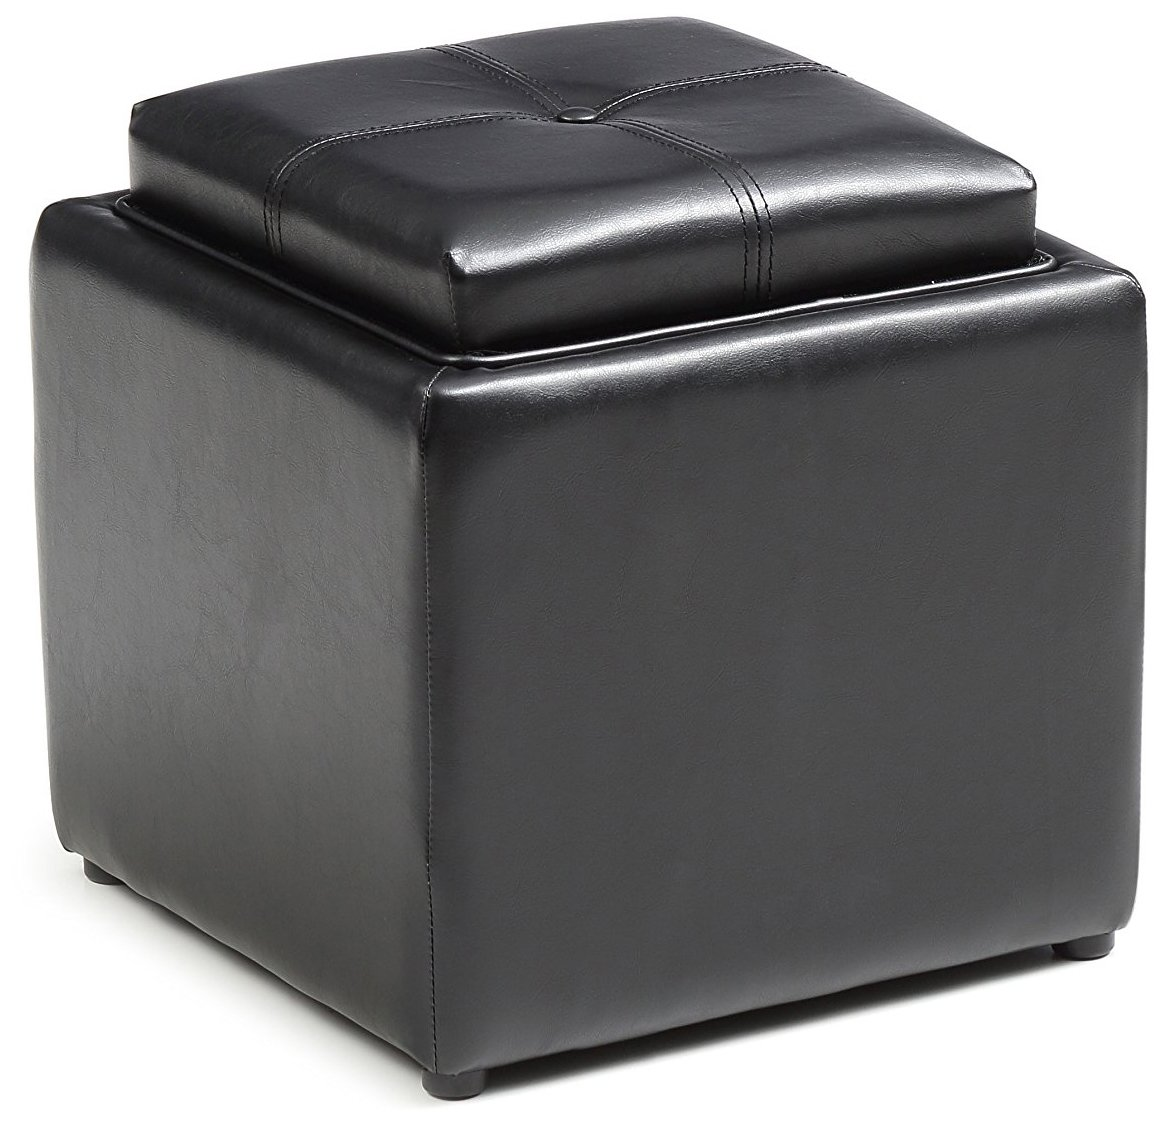 HODEDAH IMPORT Hodedah Storage Ottoman with Wood Flip Over Tray, Black